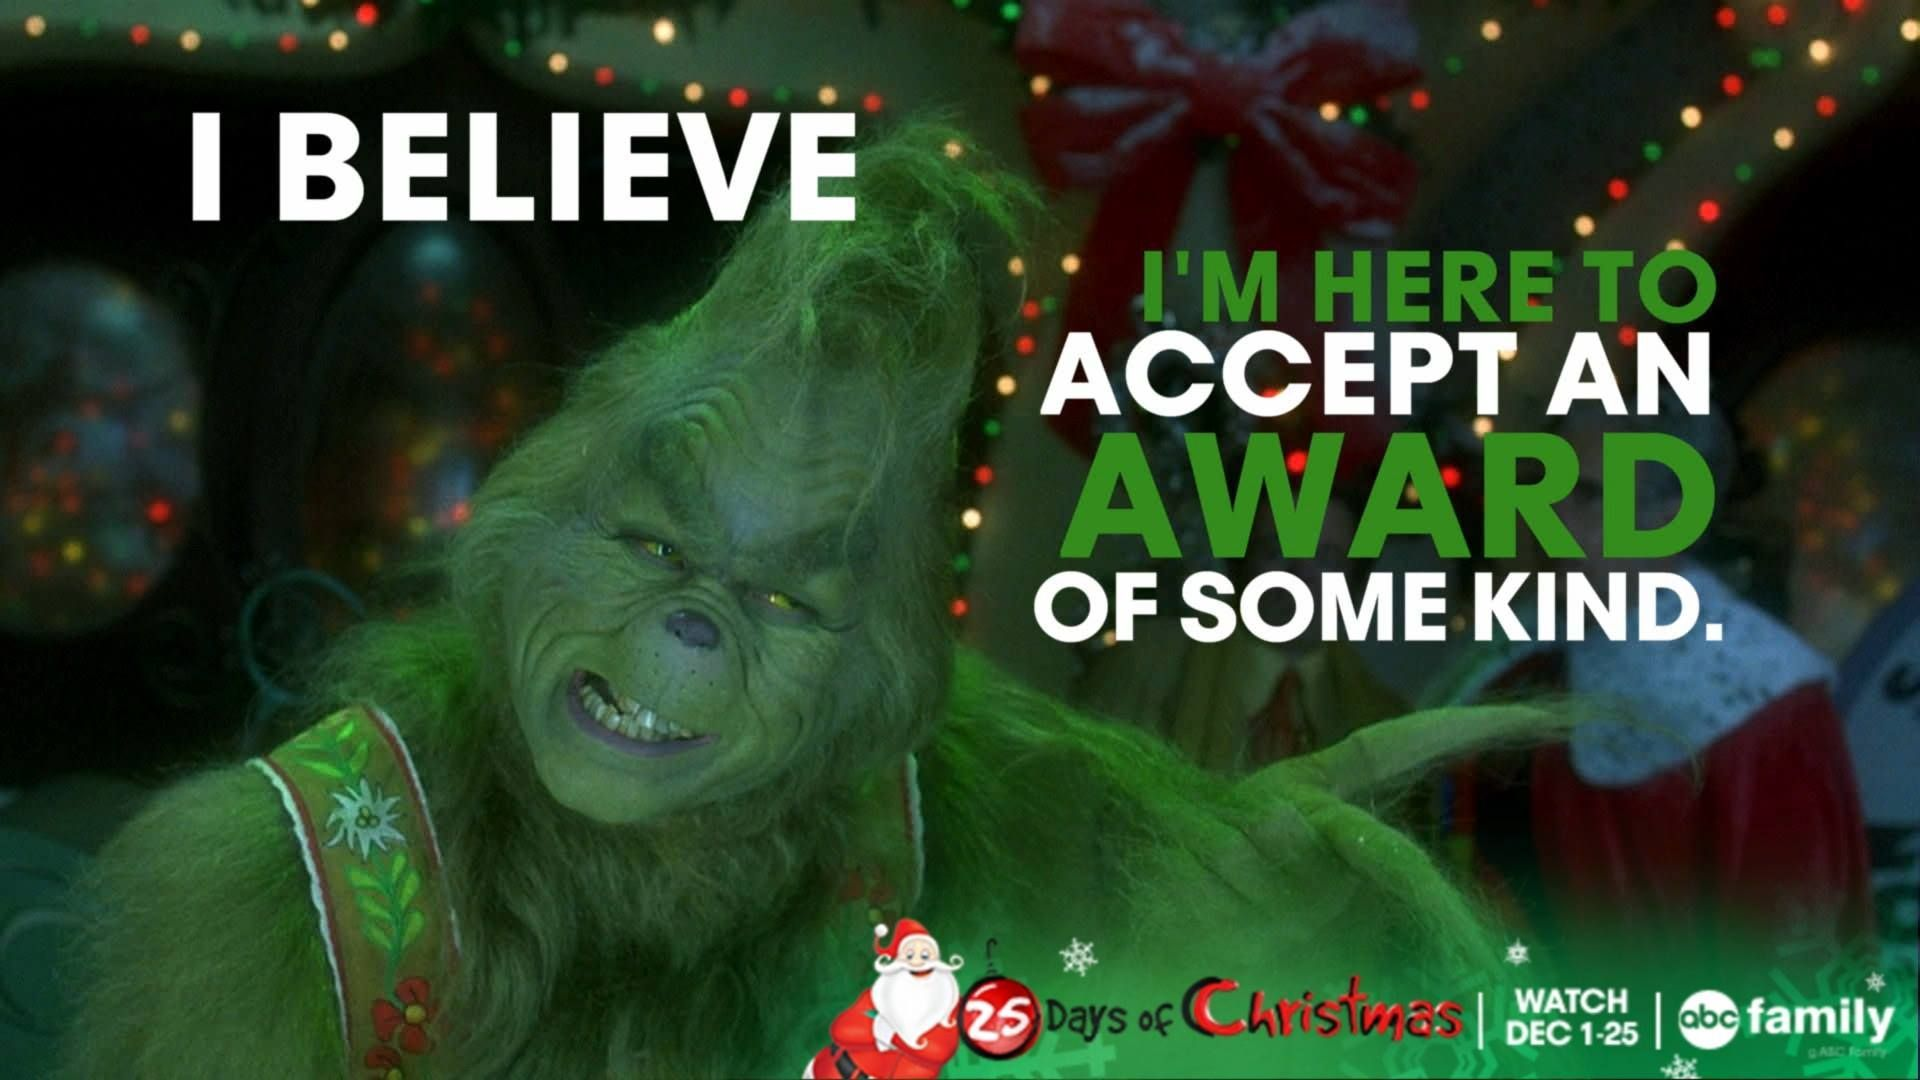 Top 18 Grinch Memes Christmas Memes Funny Christmas Quotes Grinch Grinch Memes